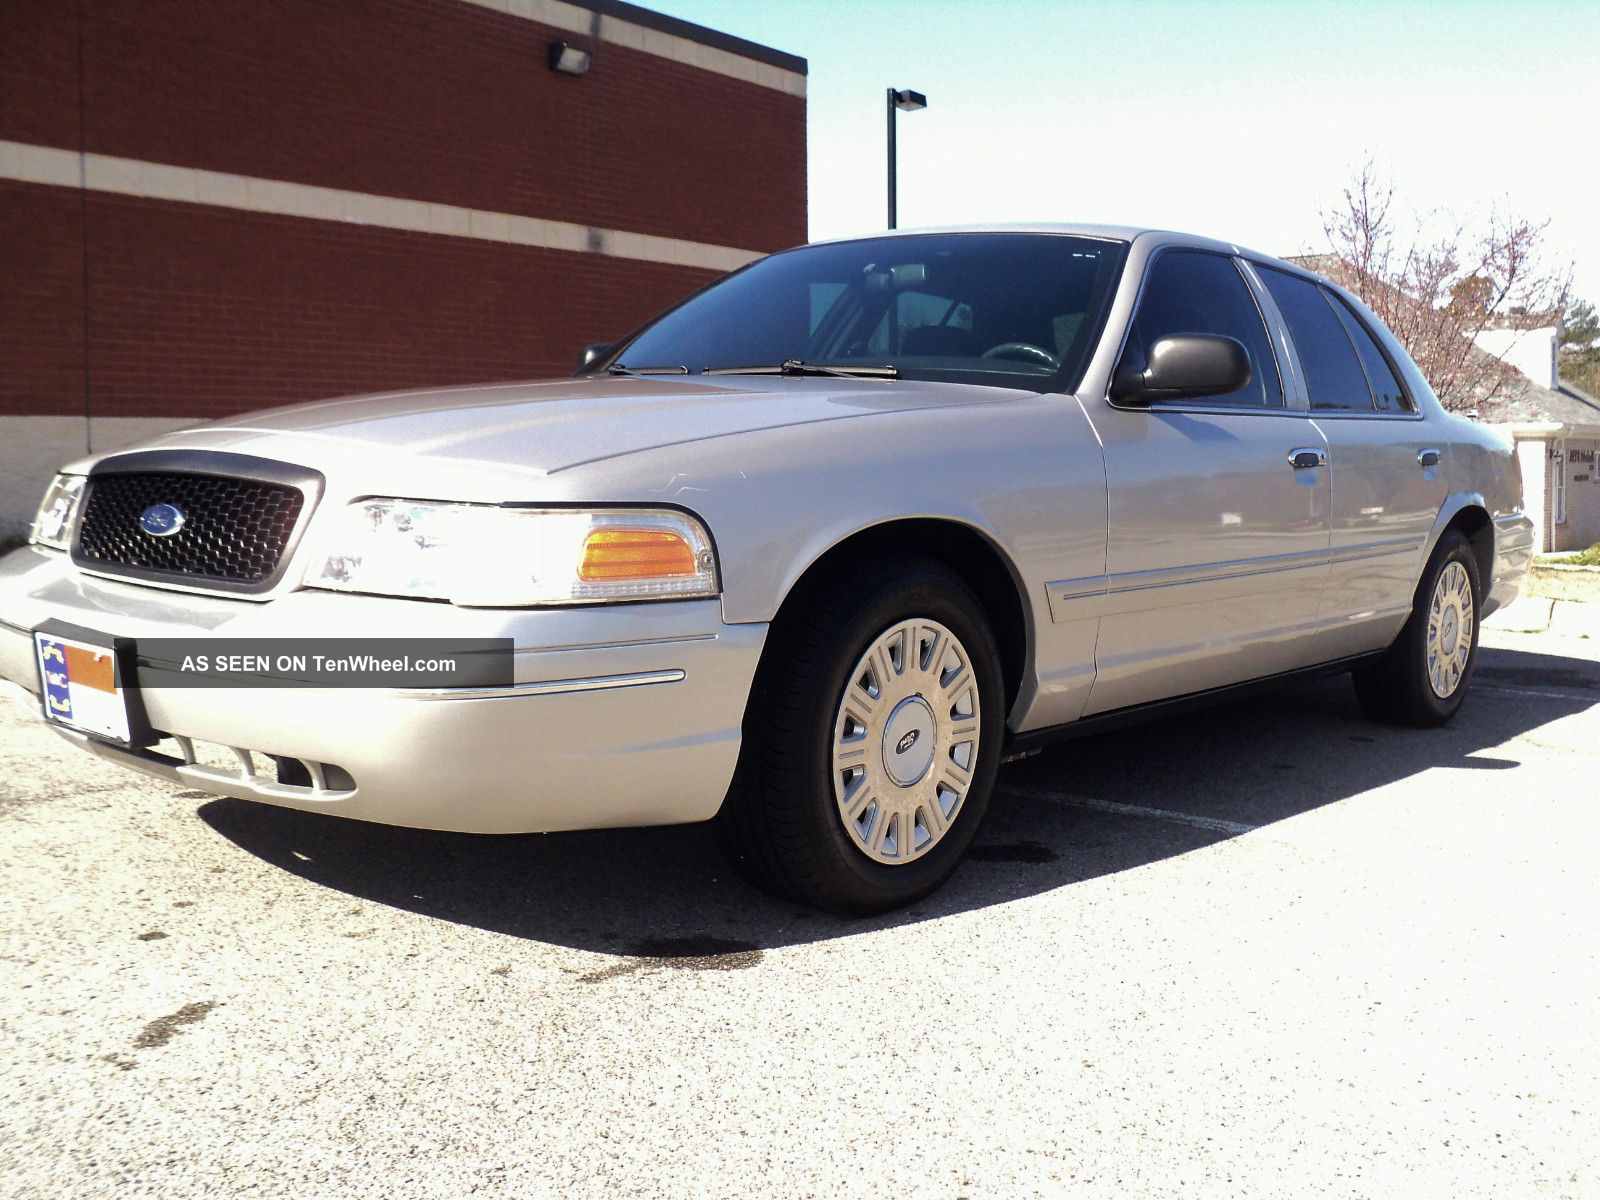 2004 Crown Victoria P71 Police Interceptor.  Ex - Ncshp. . Crown Victoria photo